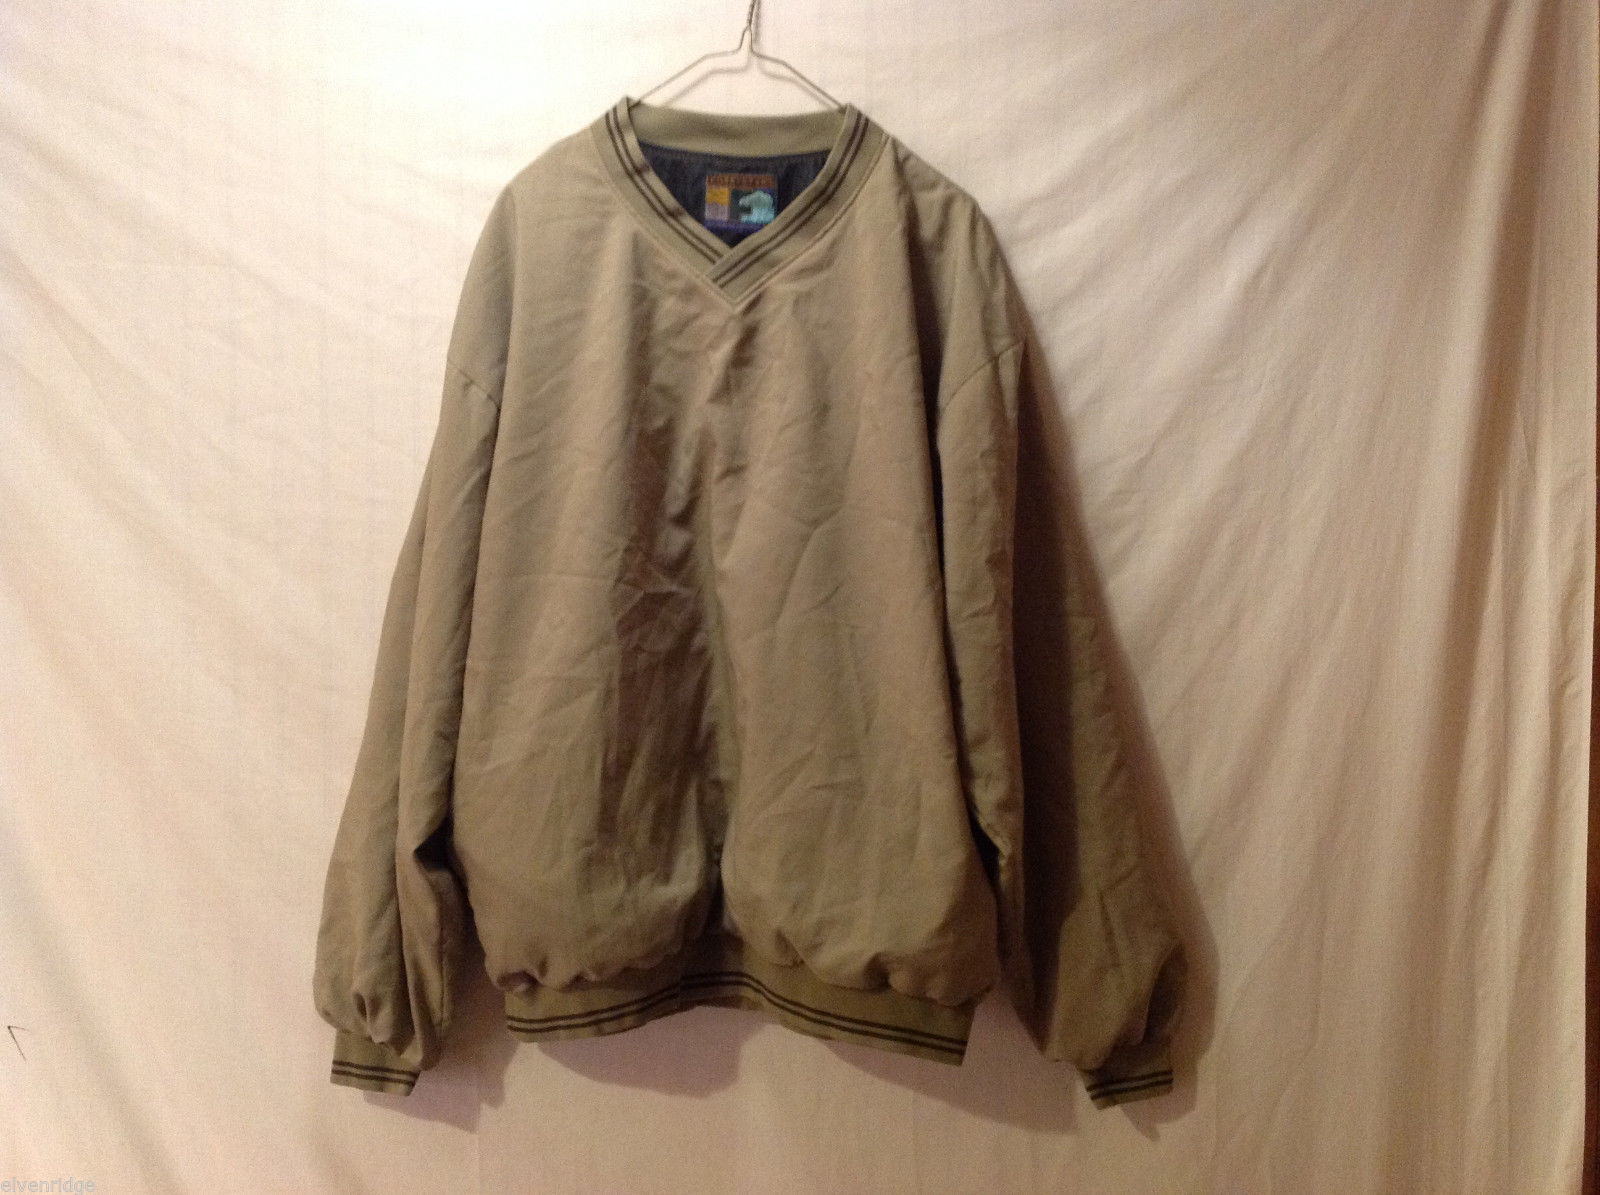 Forrester's Men's Size XL Sweatshirt Pullover Long-Sleeve Shirt Olive Green